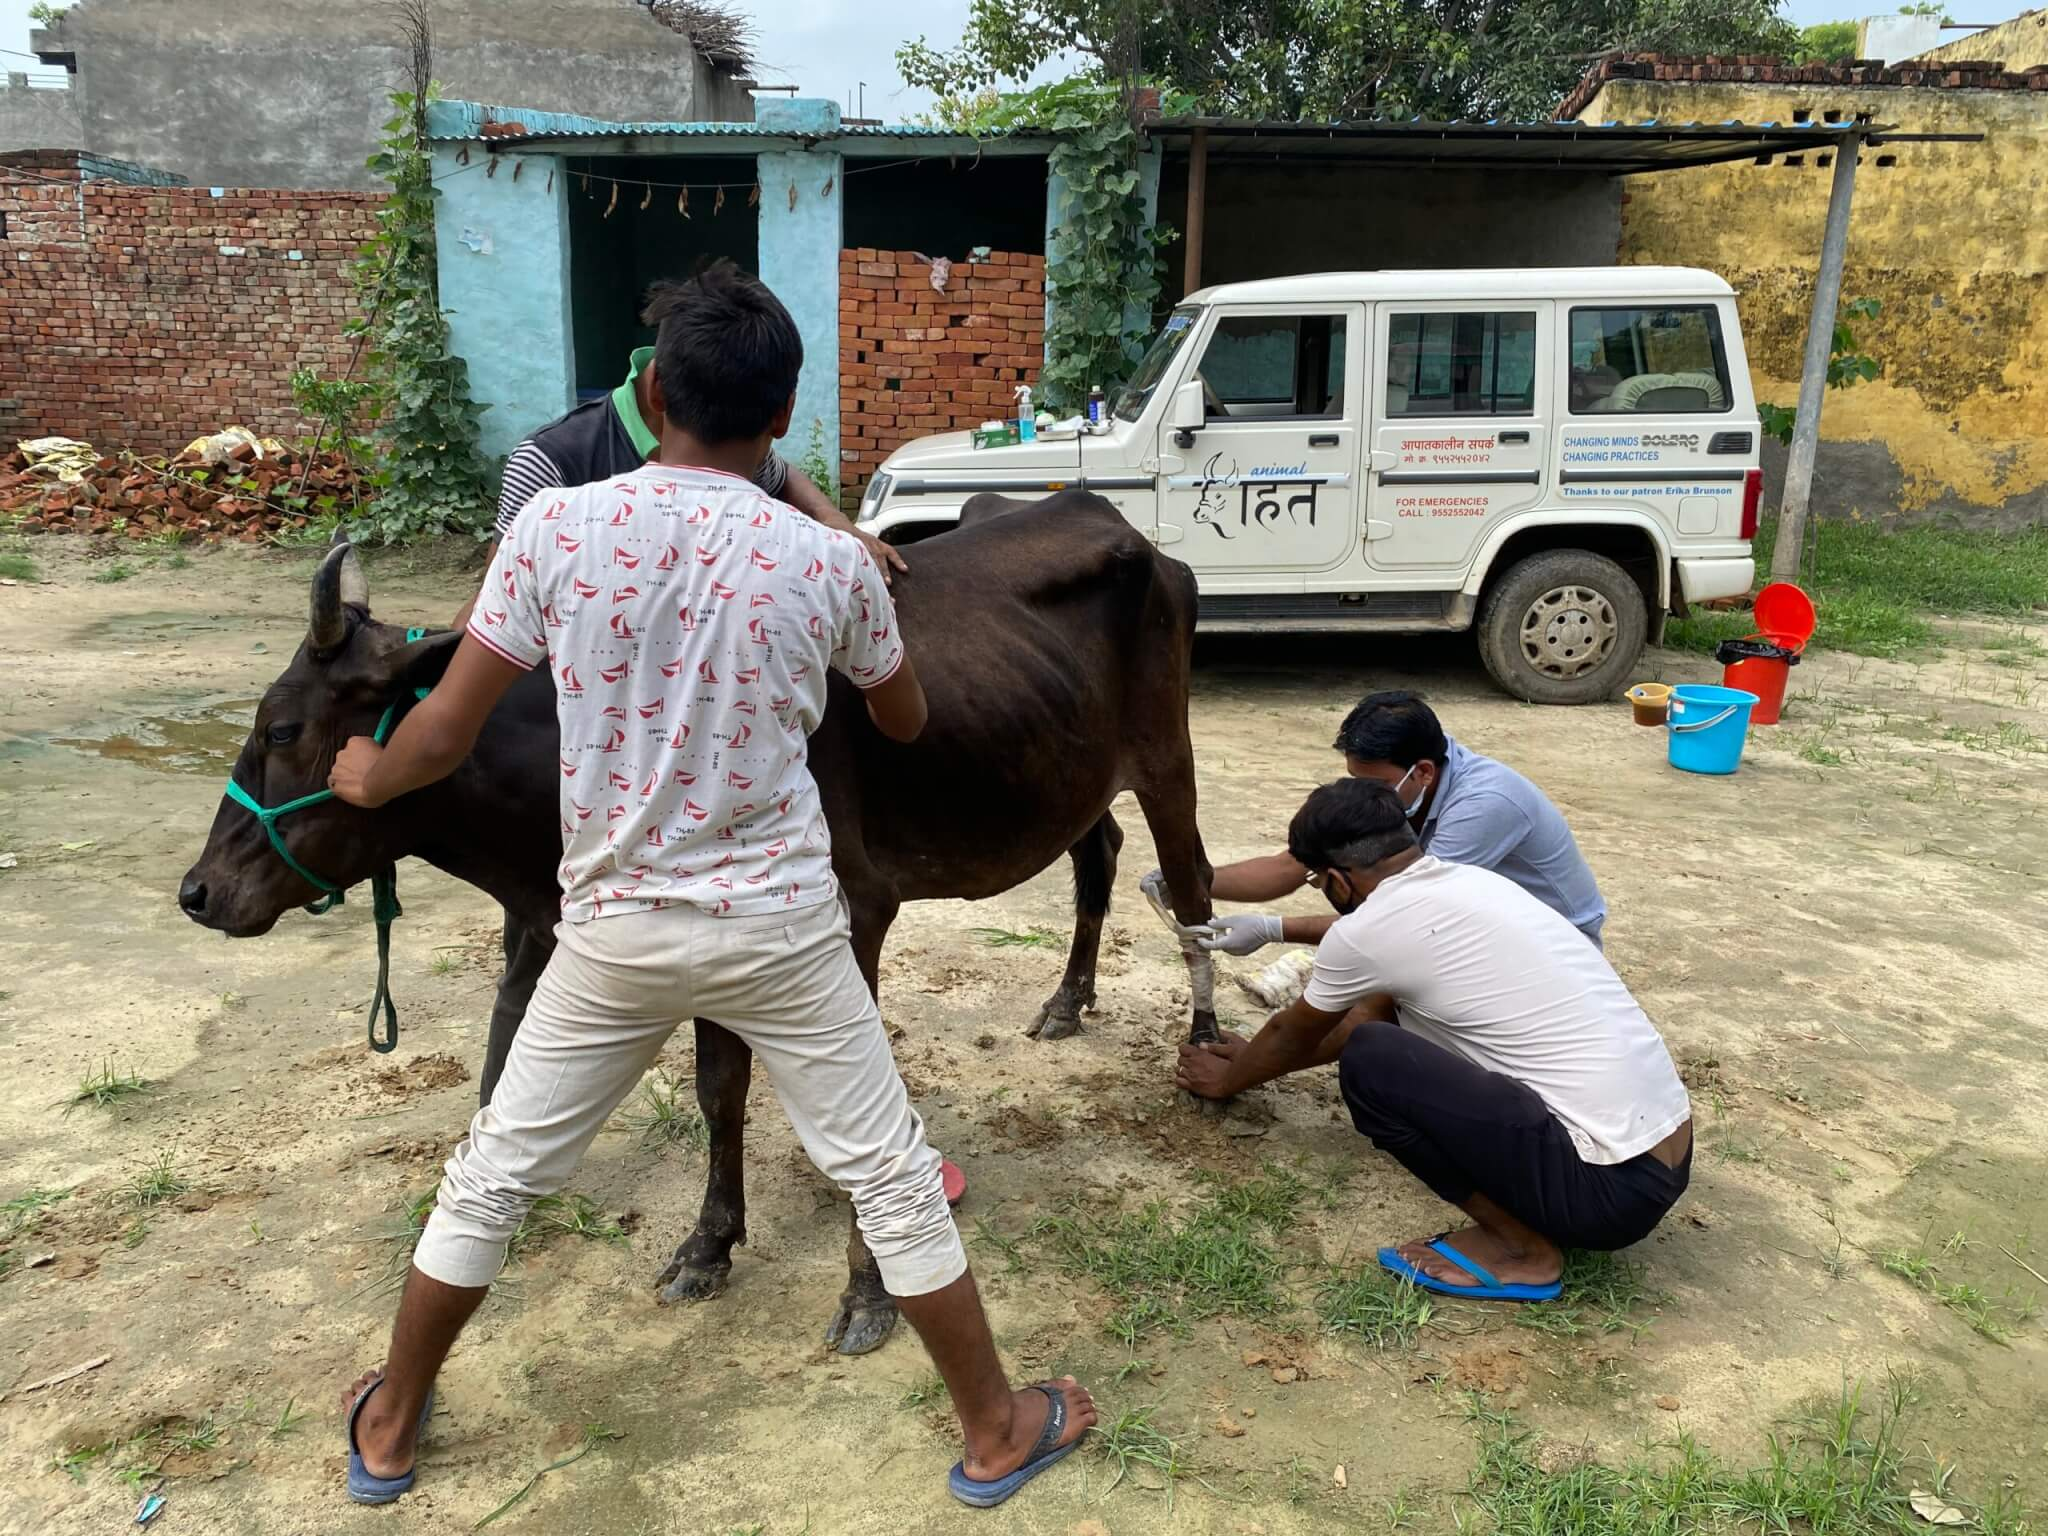 Ganga likely had an unfortunate tussle with barbed wire fencing that left painful, open wounds on her legs.